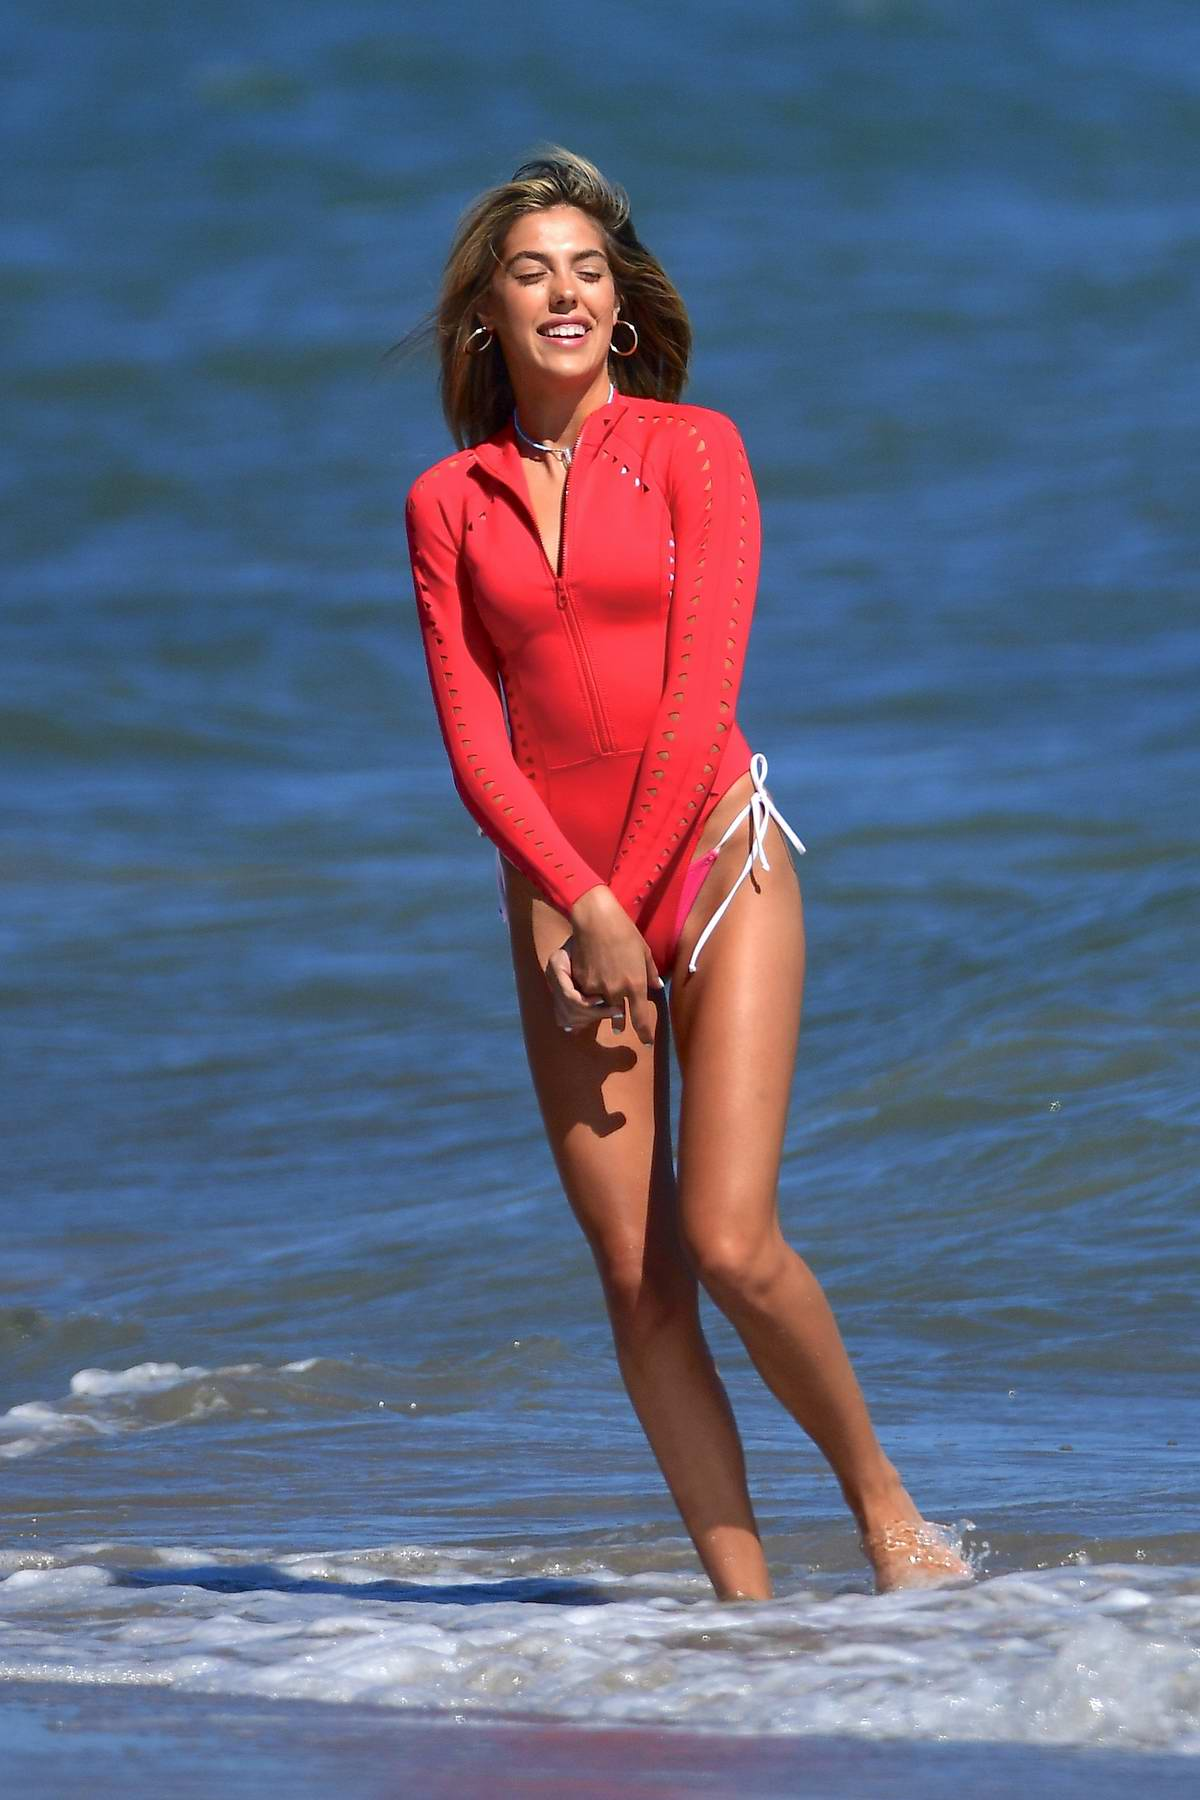 Sistine Stallone looks striking in a red swimsuit while enjoying a beach day with her dad Sylvester Stallone in Malibu, California